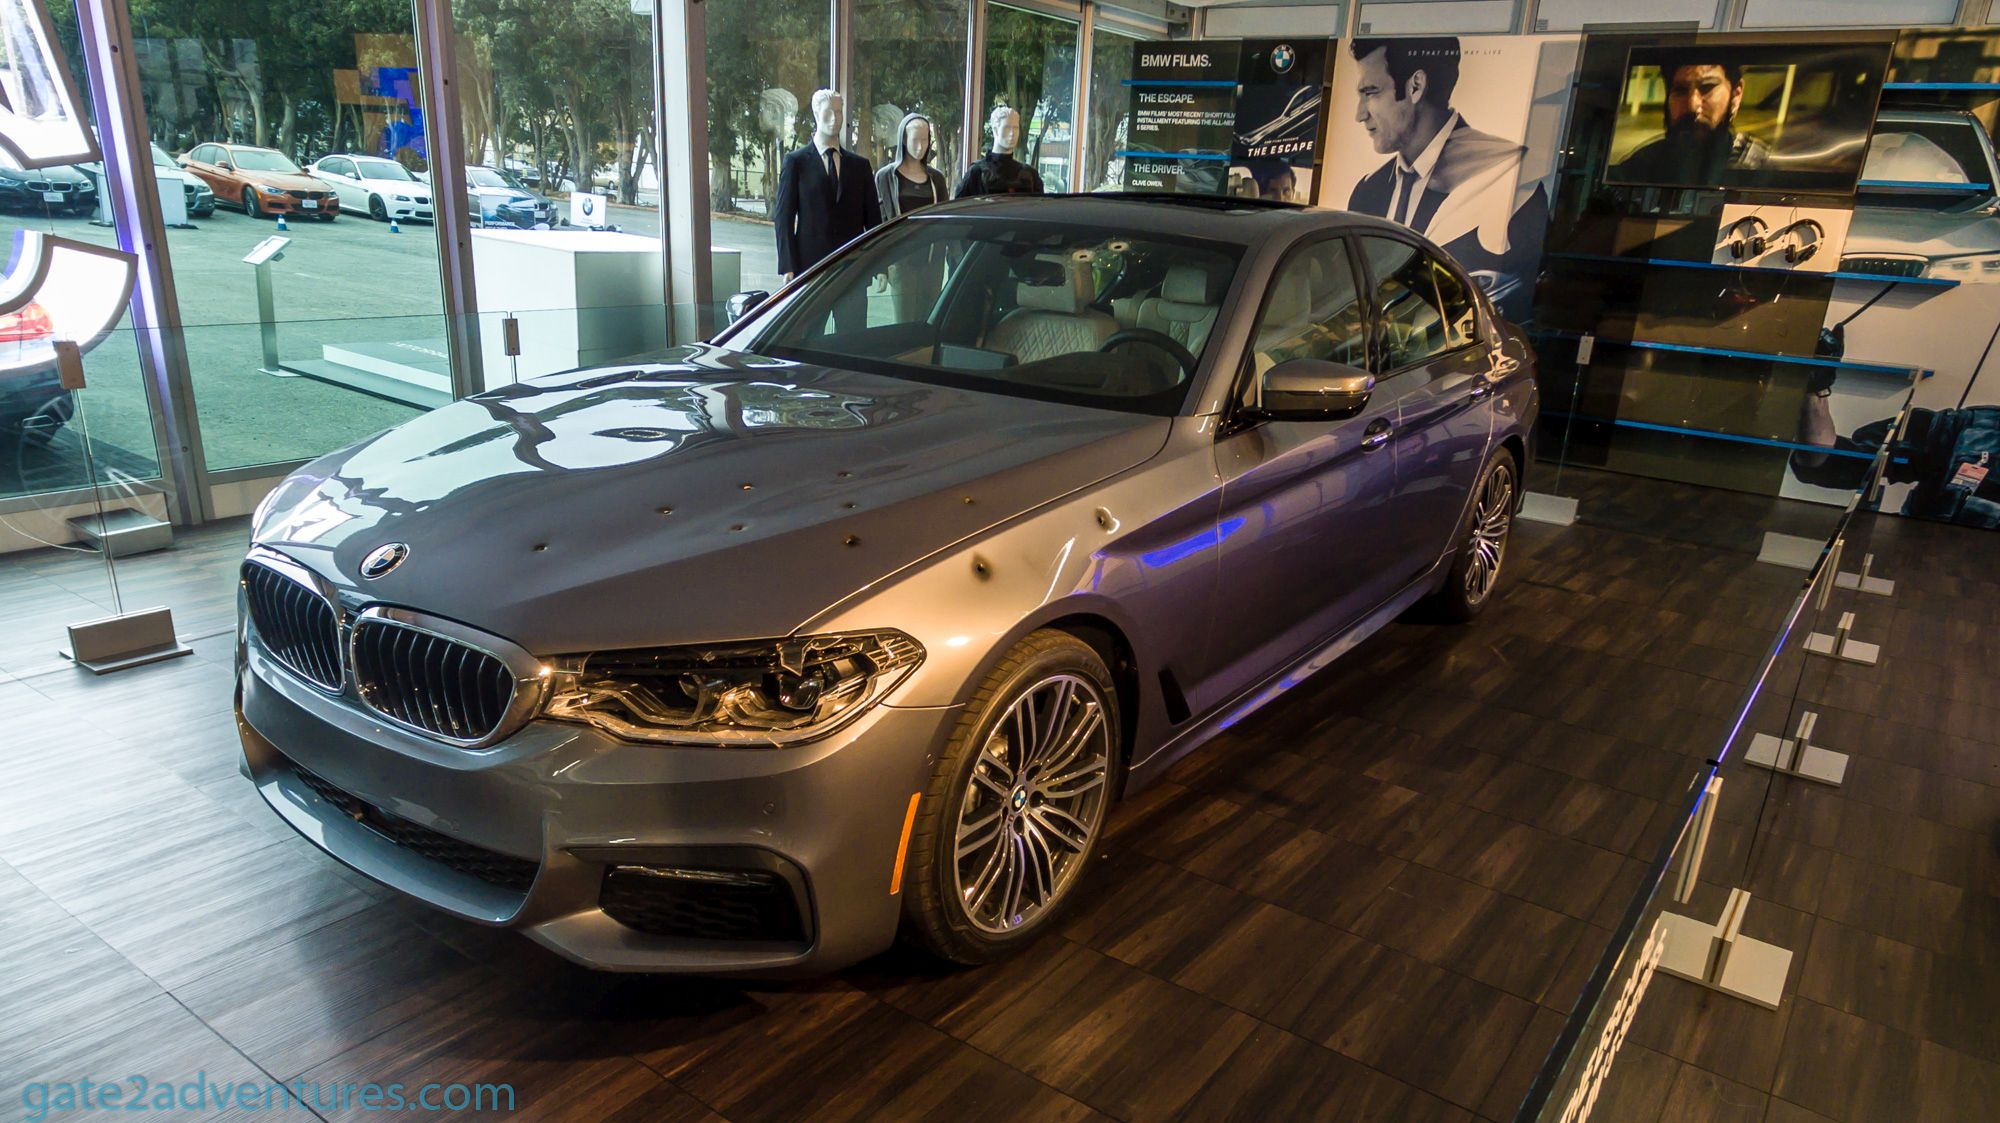 San Francisco Bmw >> My Ultimate Driving Experience With Bwm In San Francisco 2017